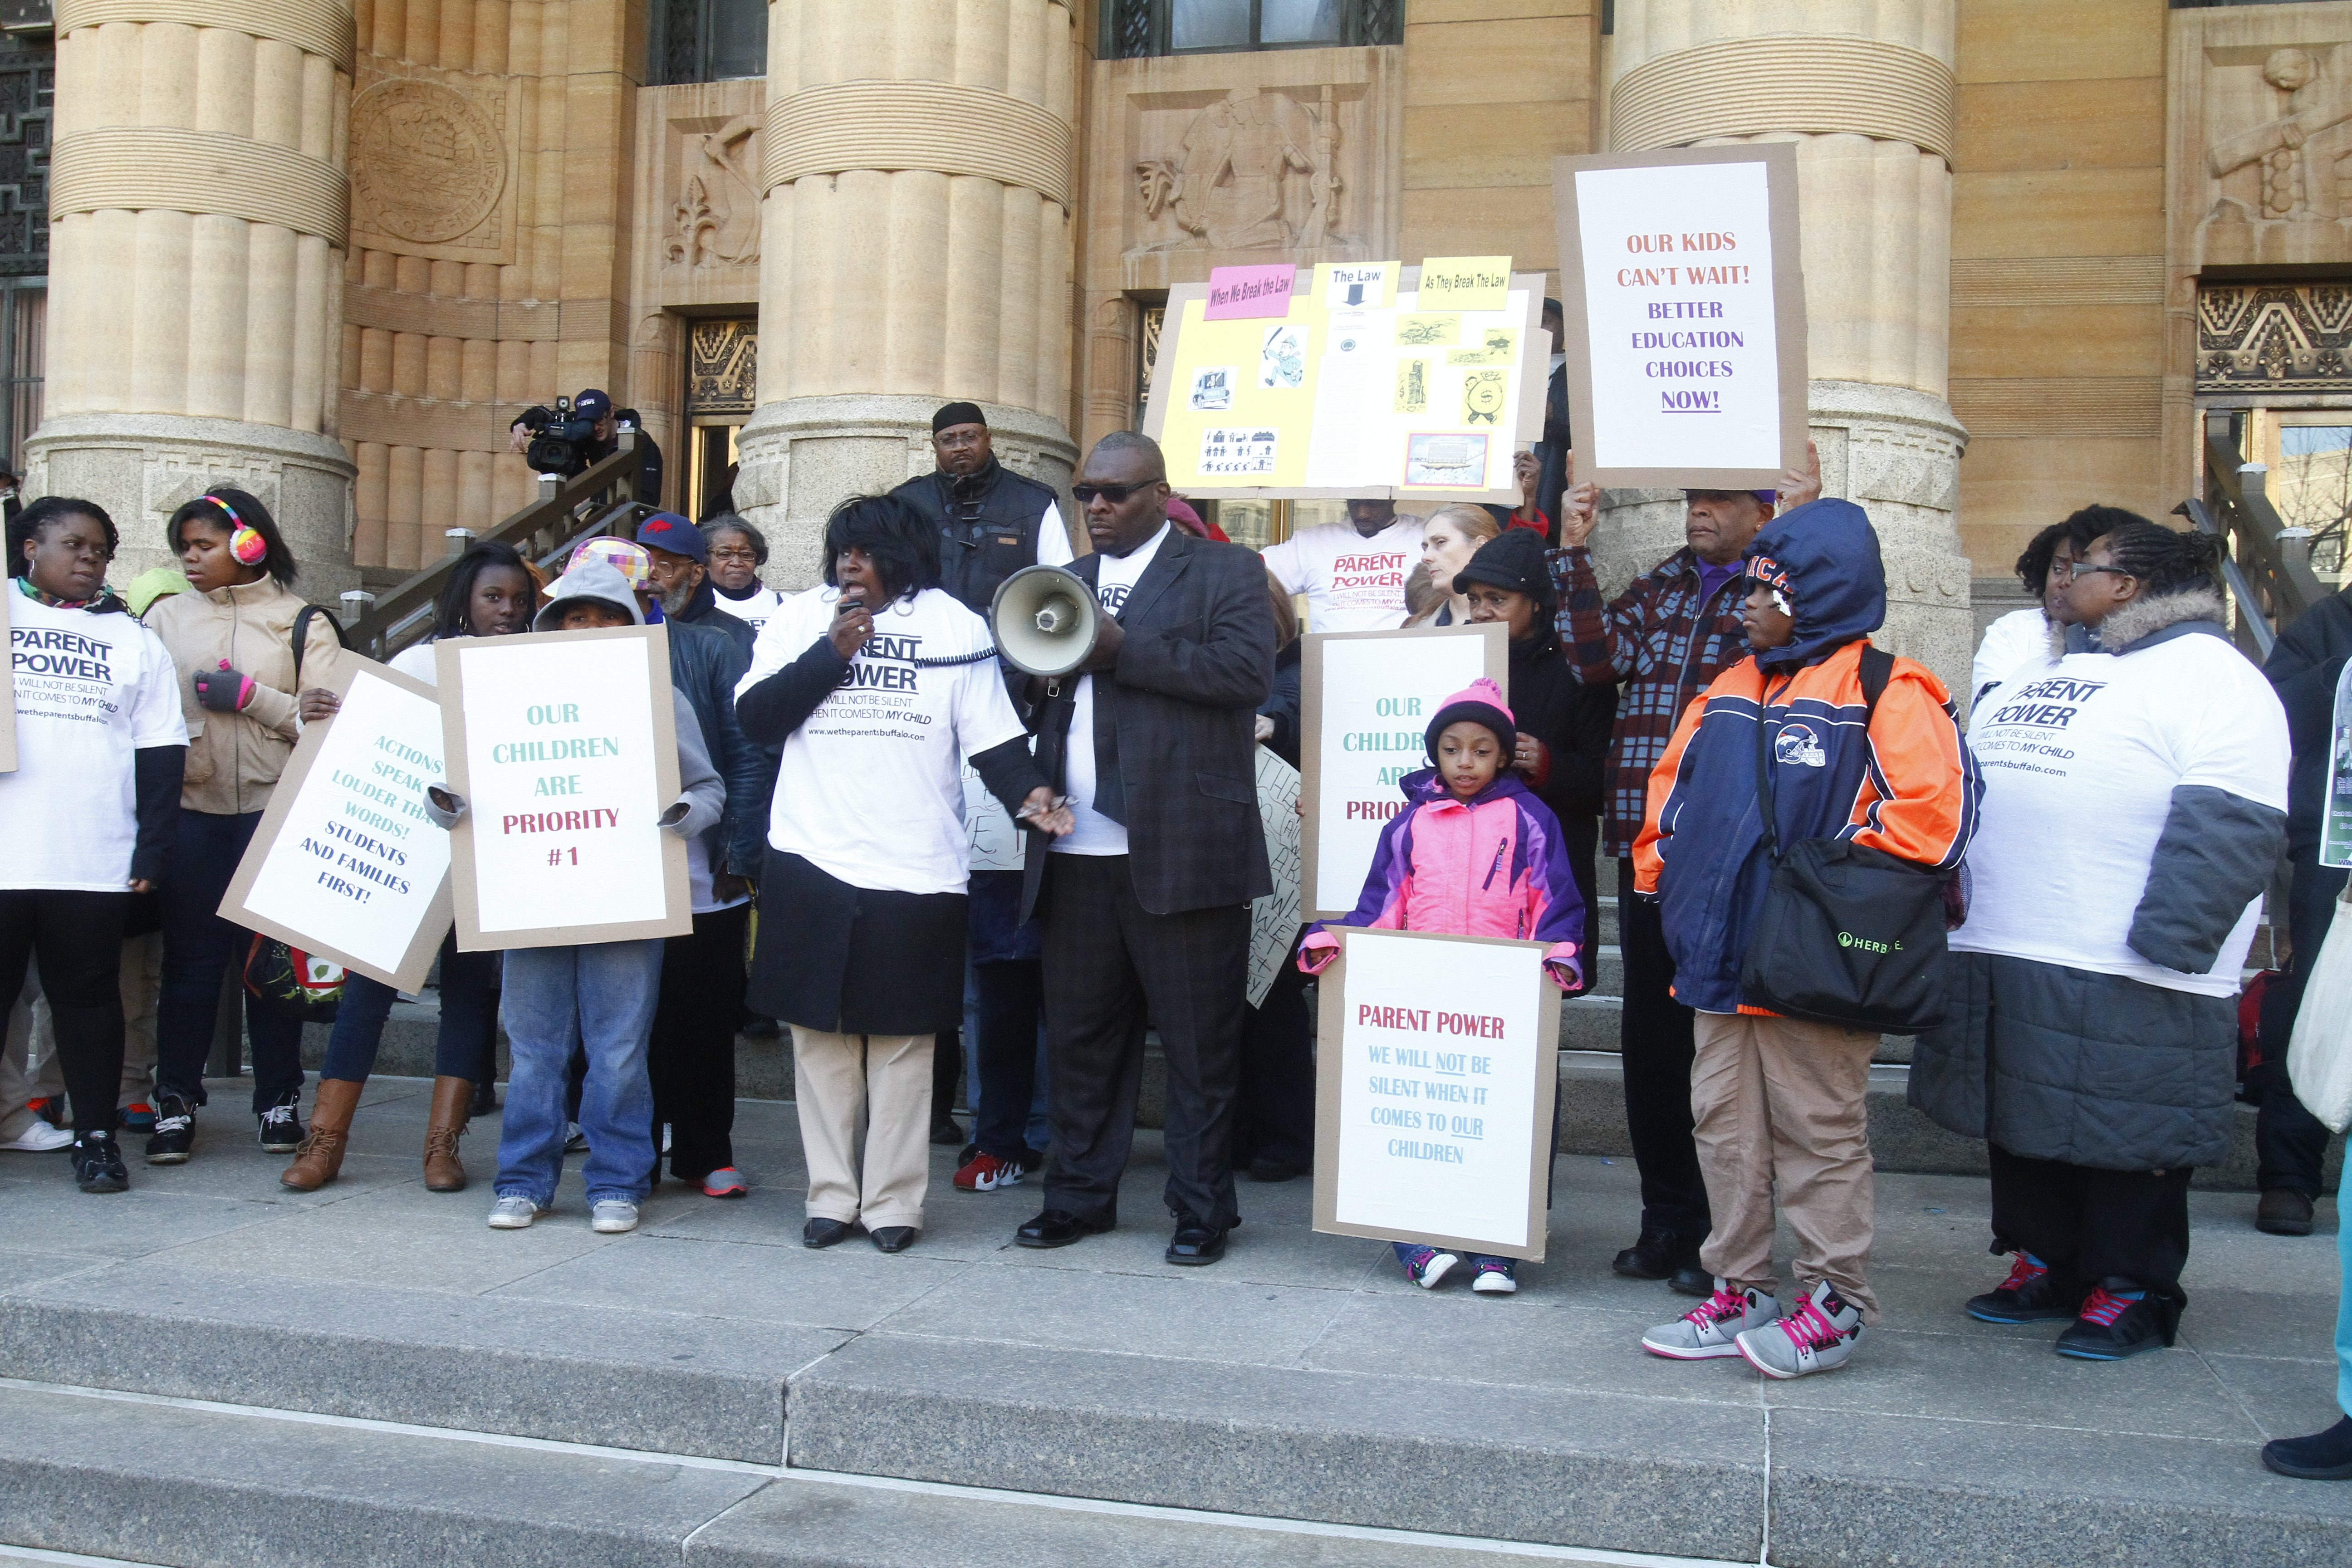 Members of We the Parents Buffalo and the District Parent Coordinating Council rally outside City Hall to call for better educational opportunities on April 23.